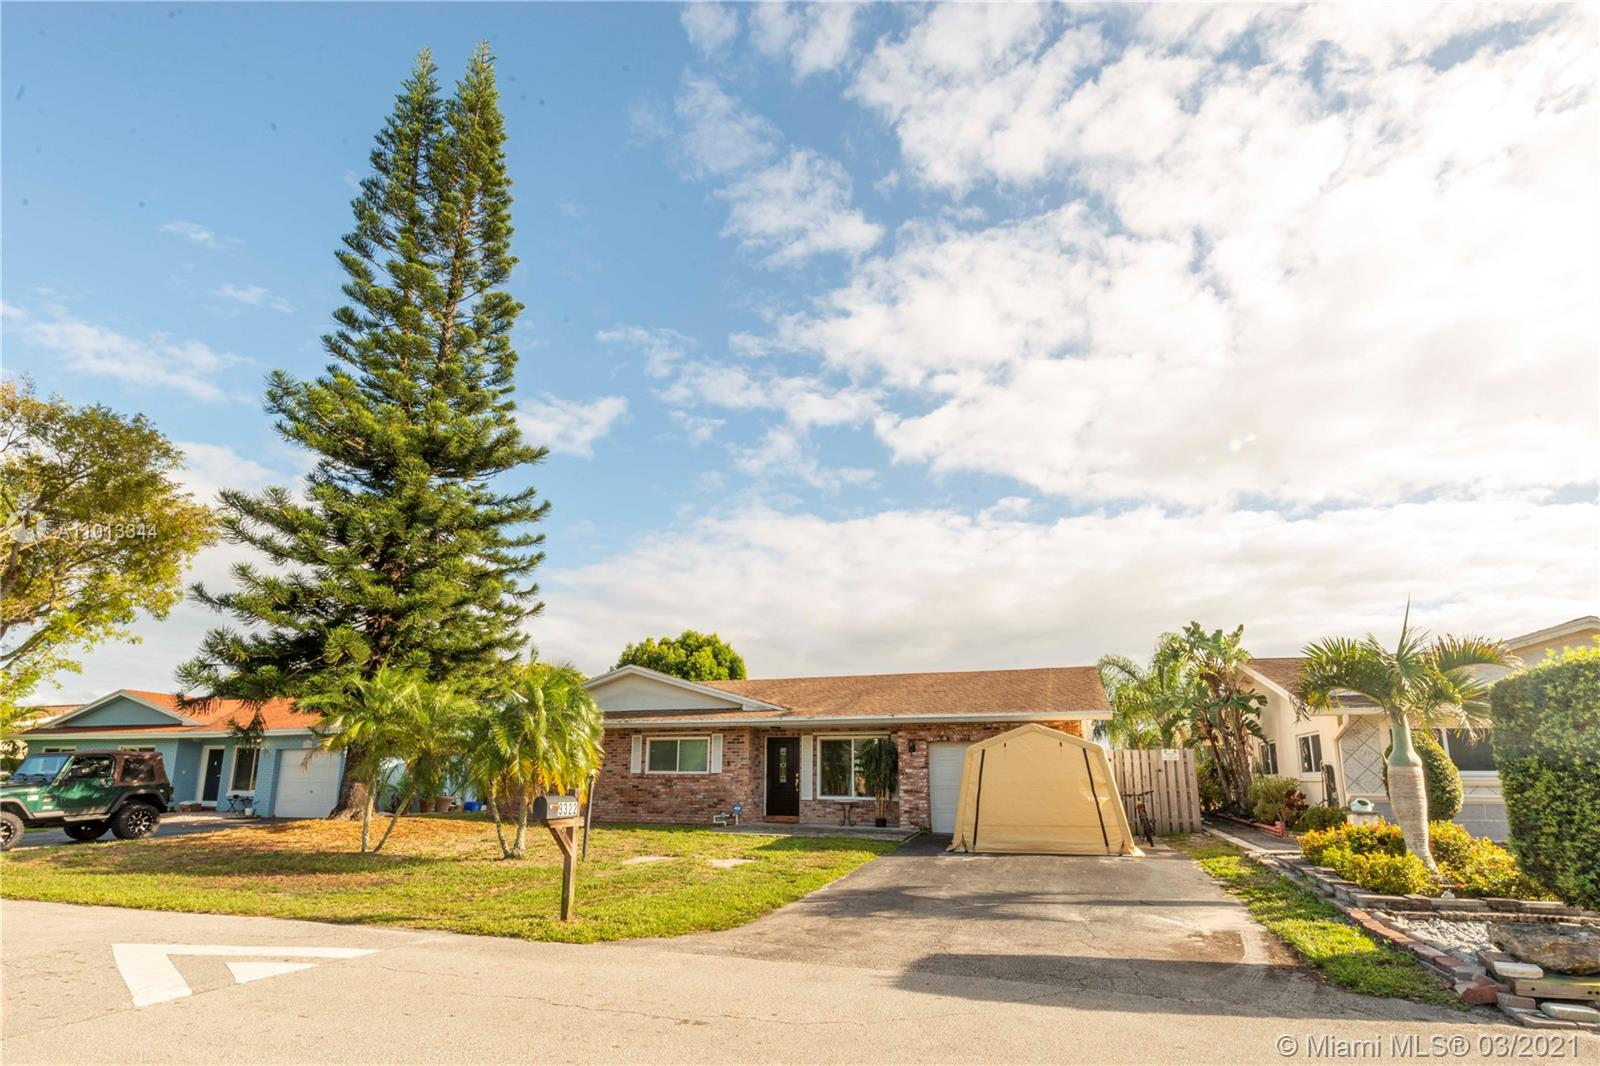 Palm Aire Village, 3322 NW 69th Ct, Fort Lauderdale, Florida 33309